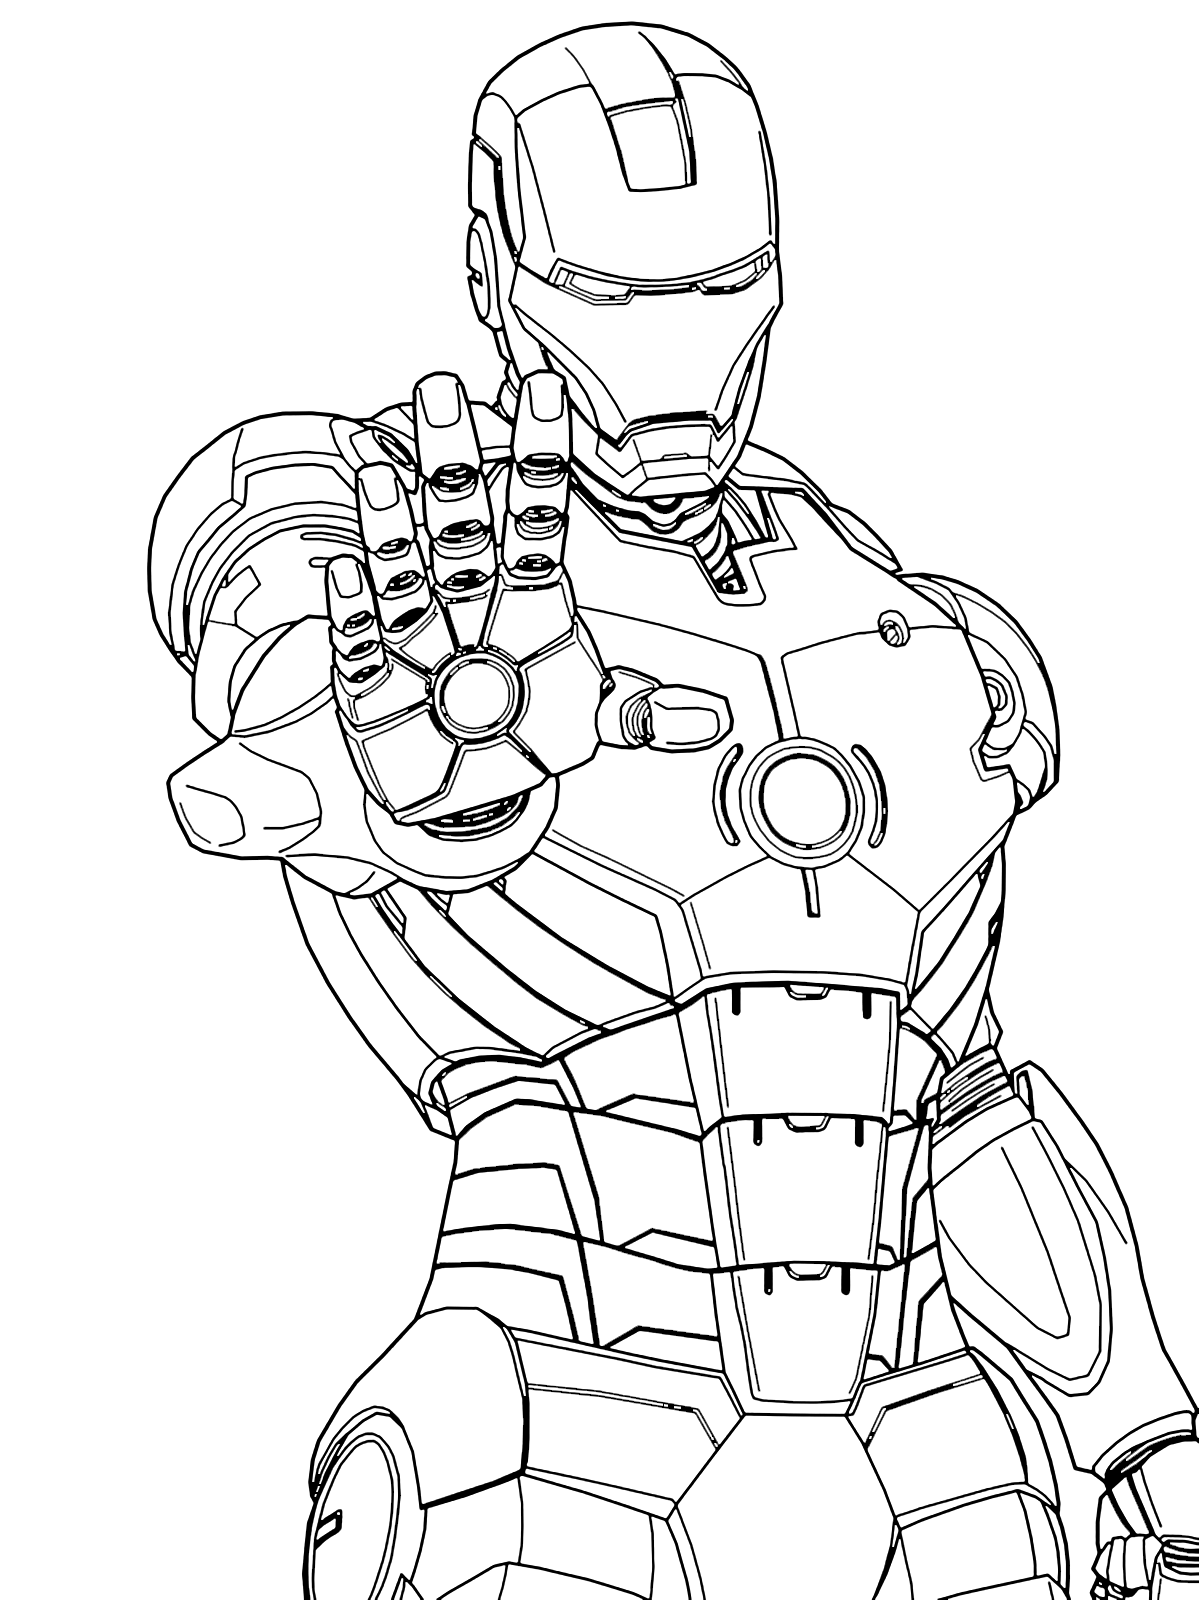 iron man colouring pages to print free printable iron man coloring pages for kids best to colouring pages man print iron